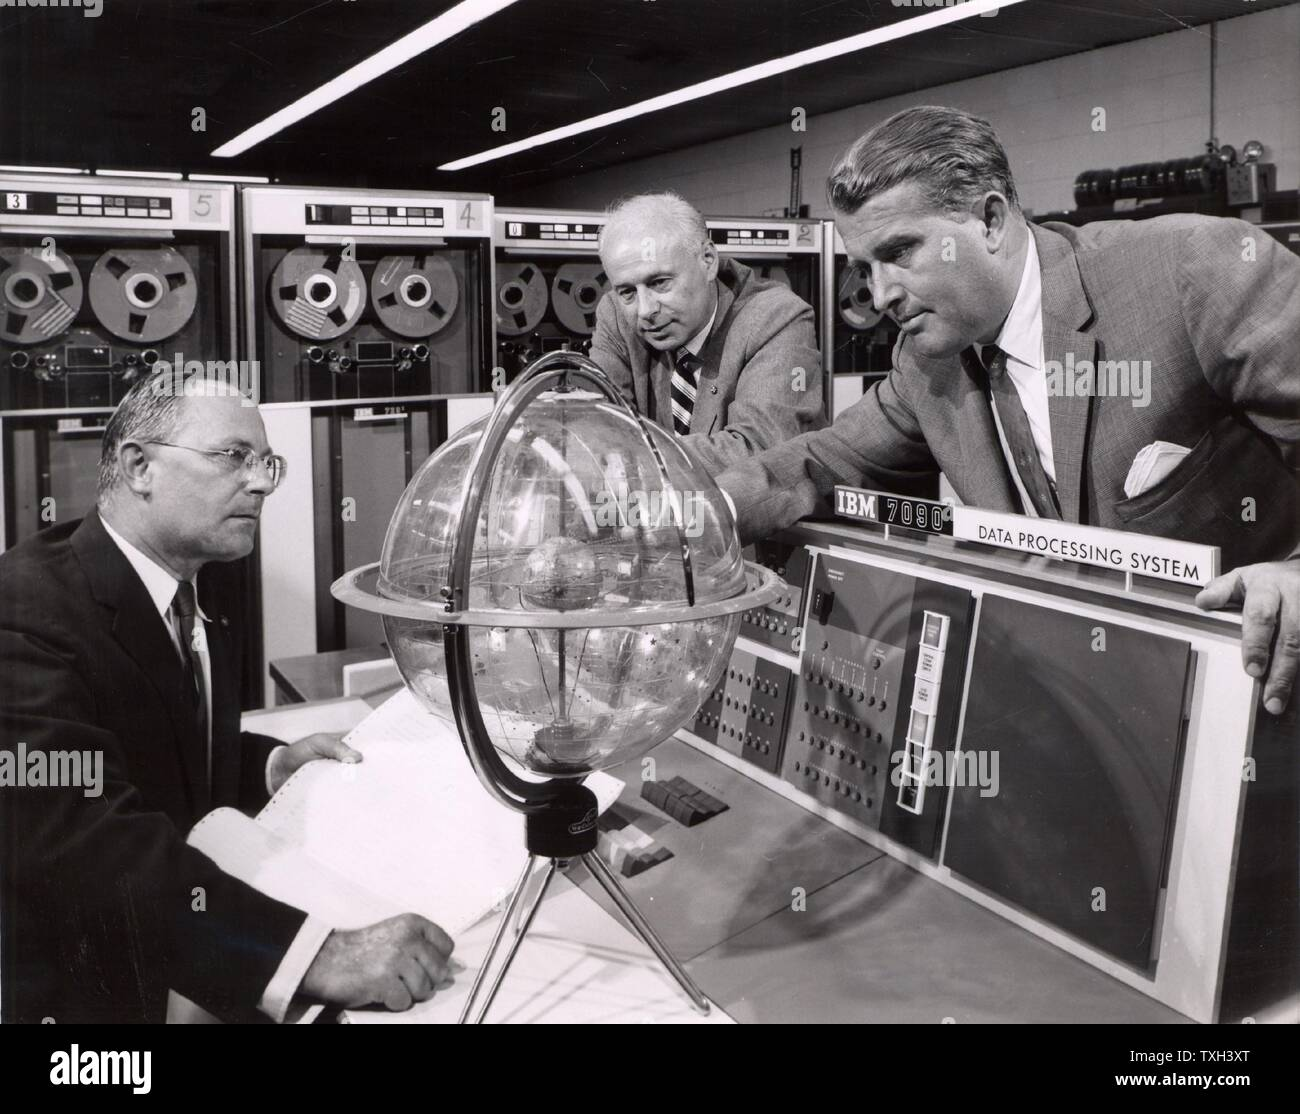 Wernher von Braun (1912-1977) German scientist involved in his country's rocket programme.  After the Second World War he took US nationality.  He became Director of NASA and is regarded as the father of the US space programme.  Von Braun in 1960 when Director of the Marshall Space Flight Centre, in discussion with Dr Helmut Hoelzer and Dr Eberhard Rees, his deputy. Stock Photo